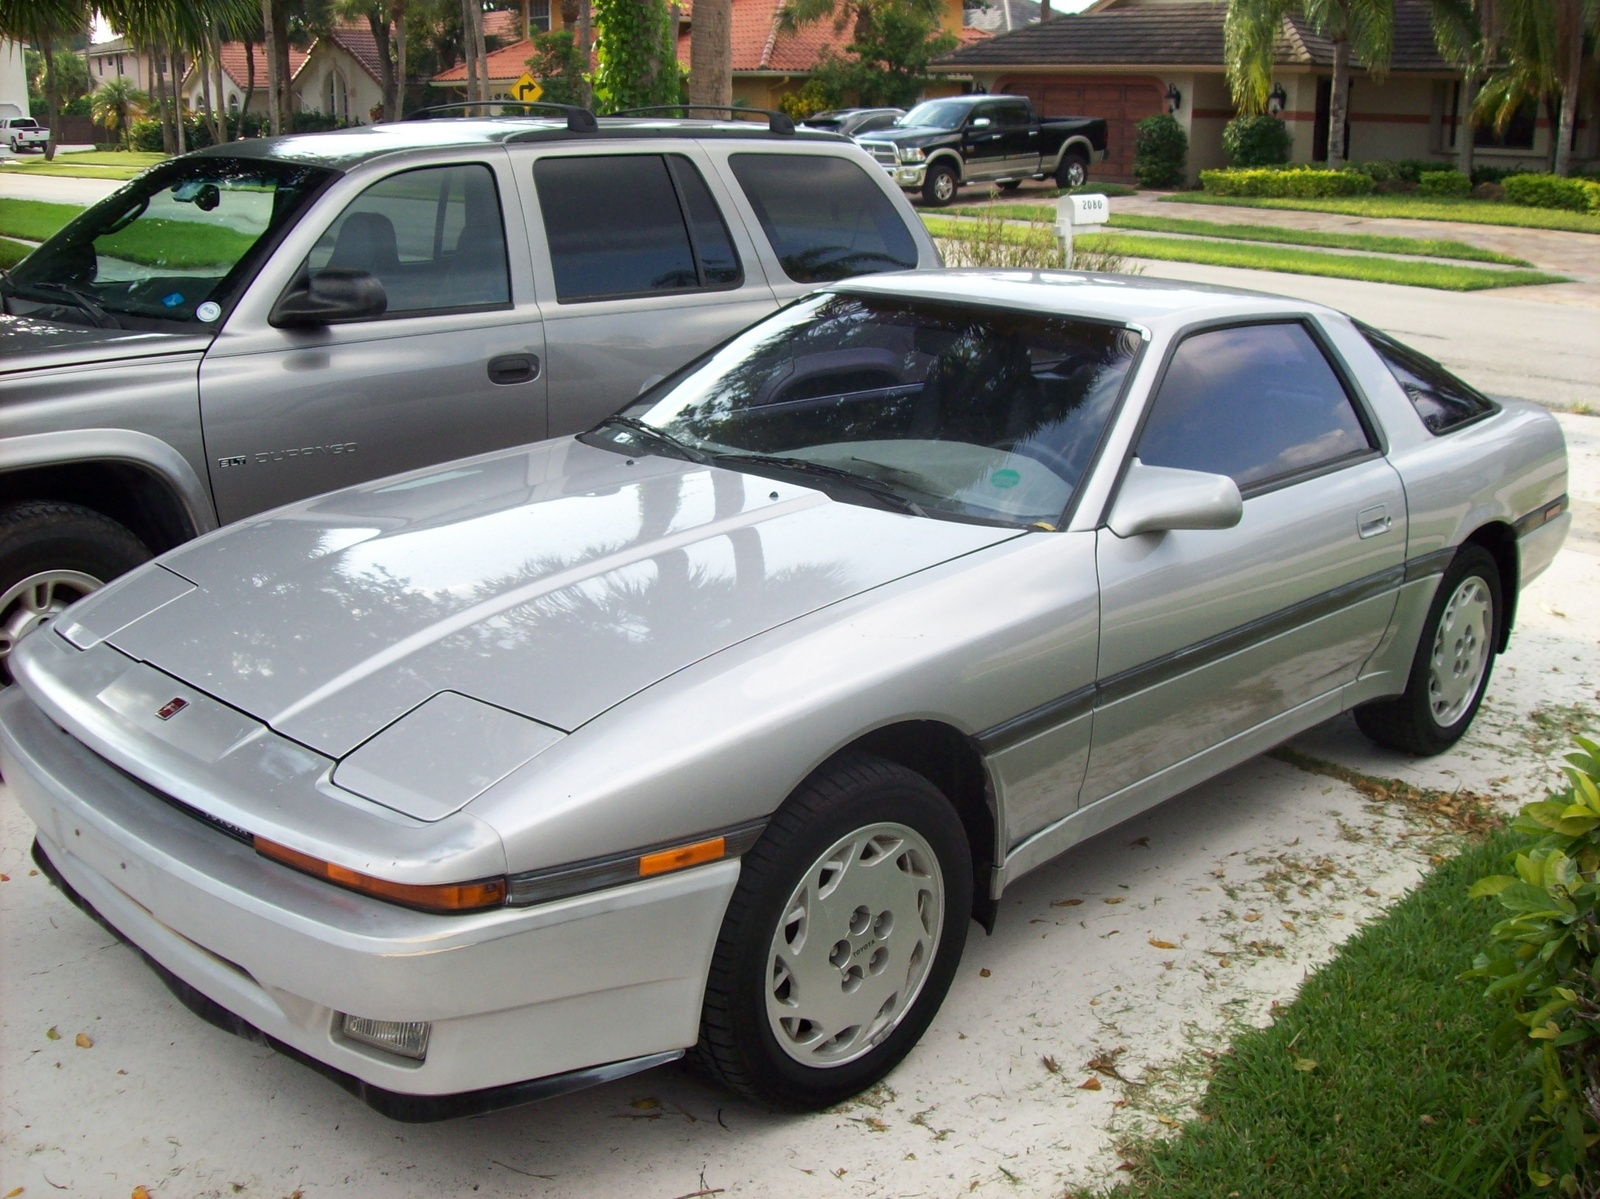 1993 Ford Mustang 50 1986 Toyota Supra - Pictures - CarGurus